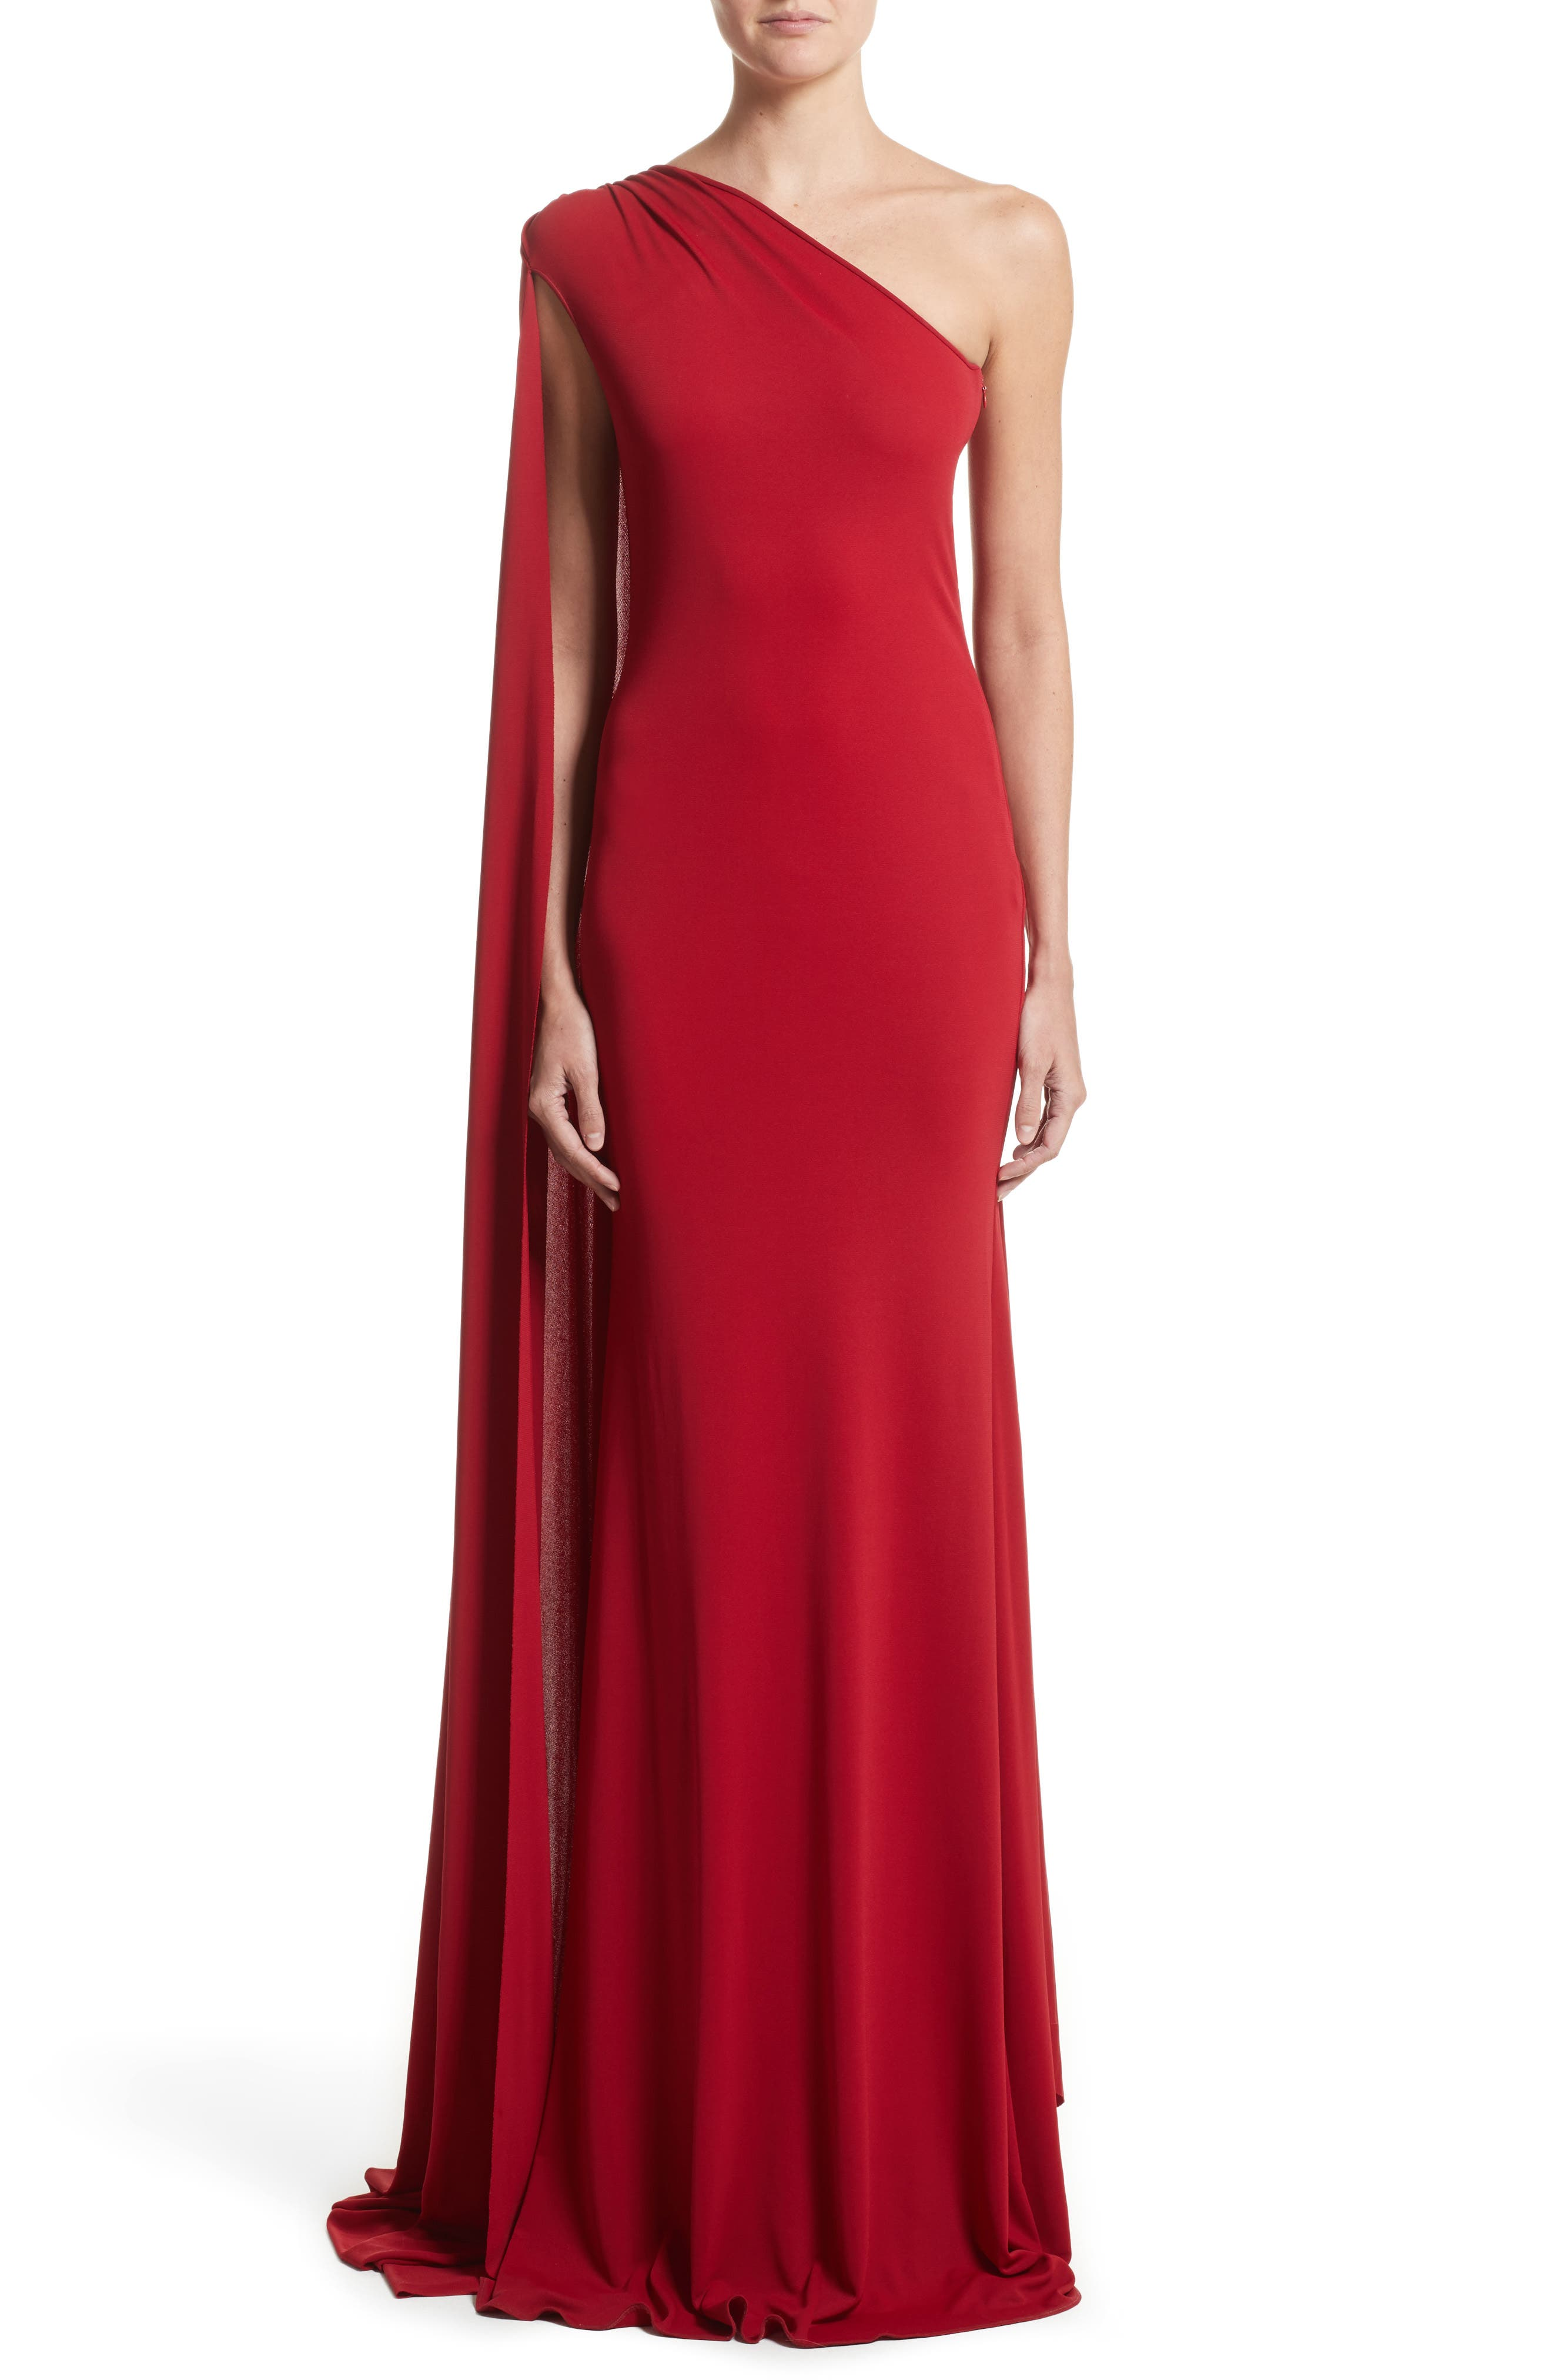 Alternate Image 1 Selected - Naeem Khan One-Shoulder Stretch Jersey Gown